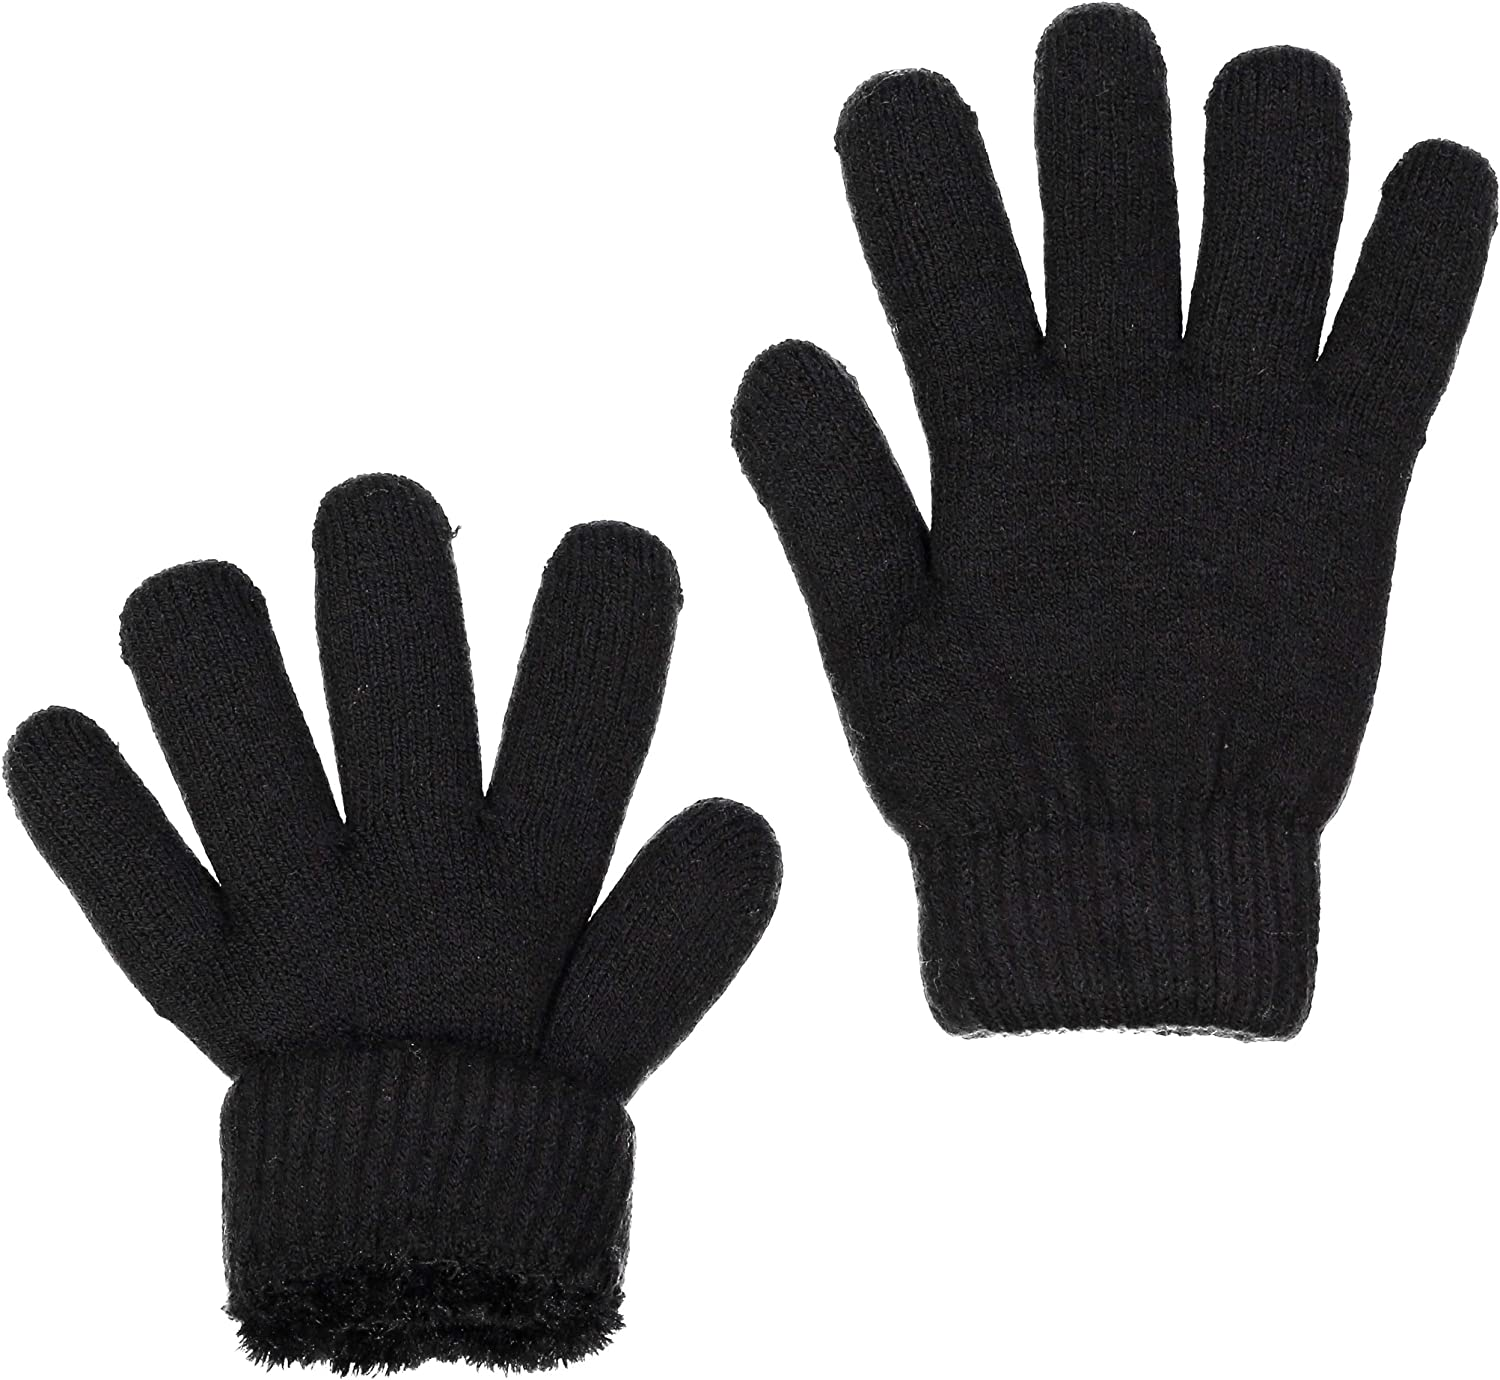 ZEHU Womens At the price 1 year warranty of surprise Soft Plush Knit Faux Lining Warm Fur Gloves Winter